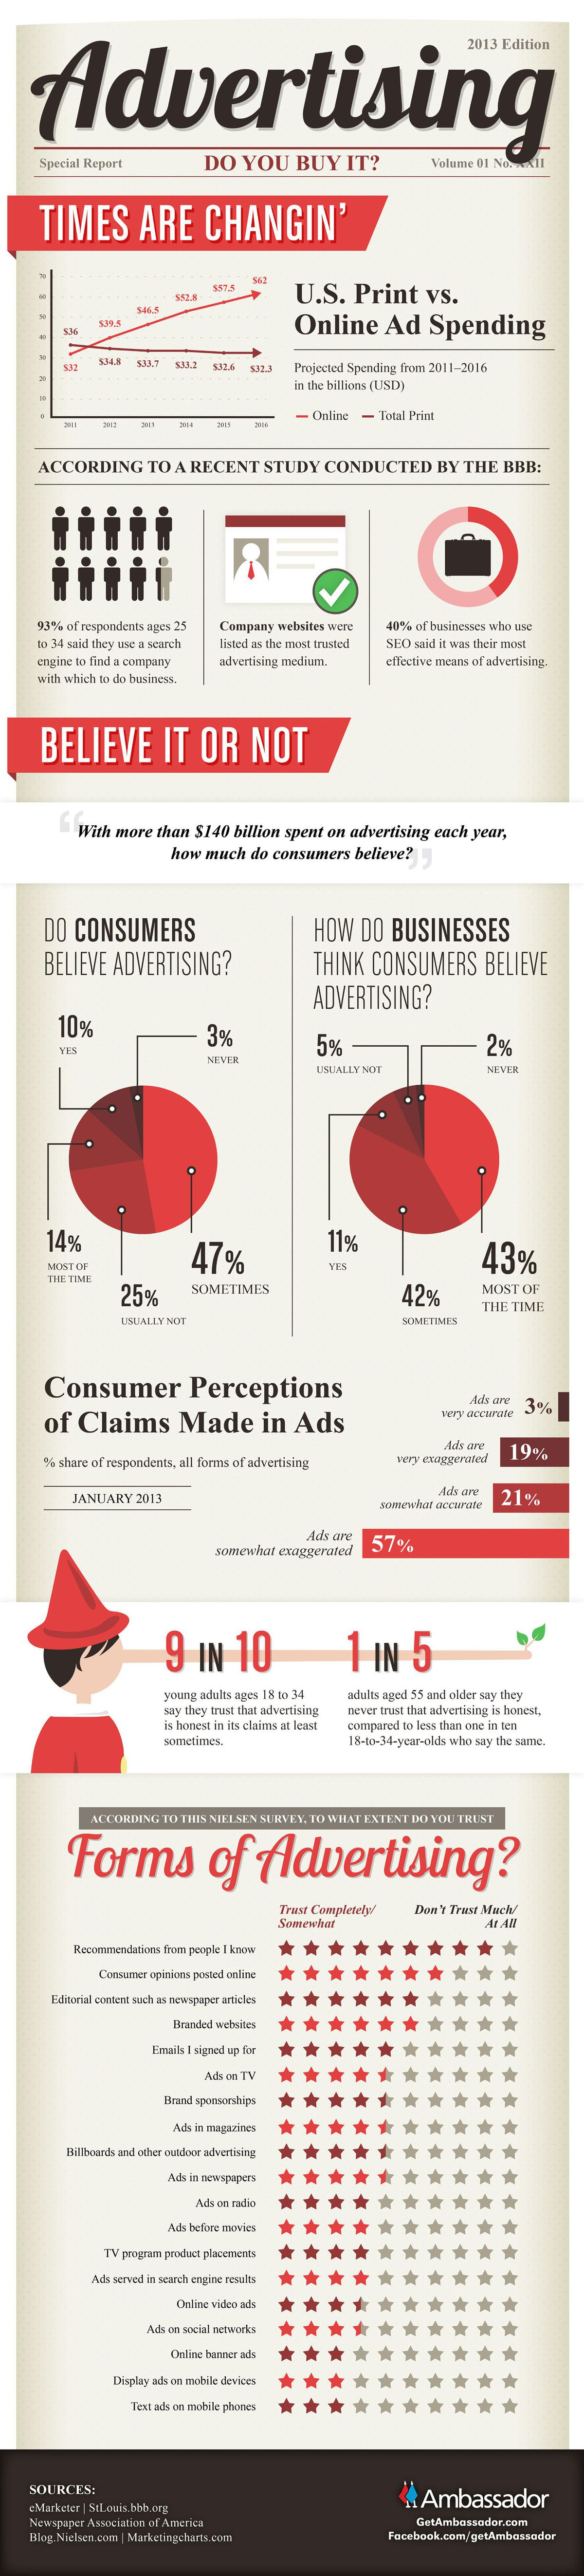 Perceptions of advertising in 2013.